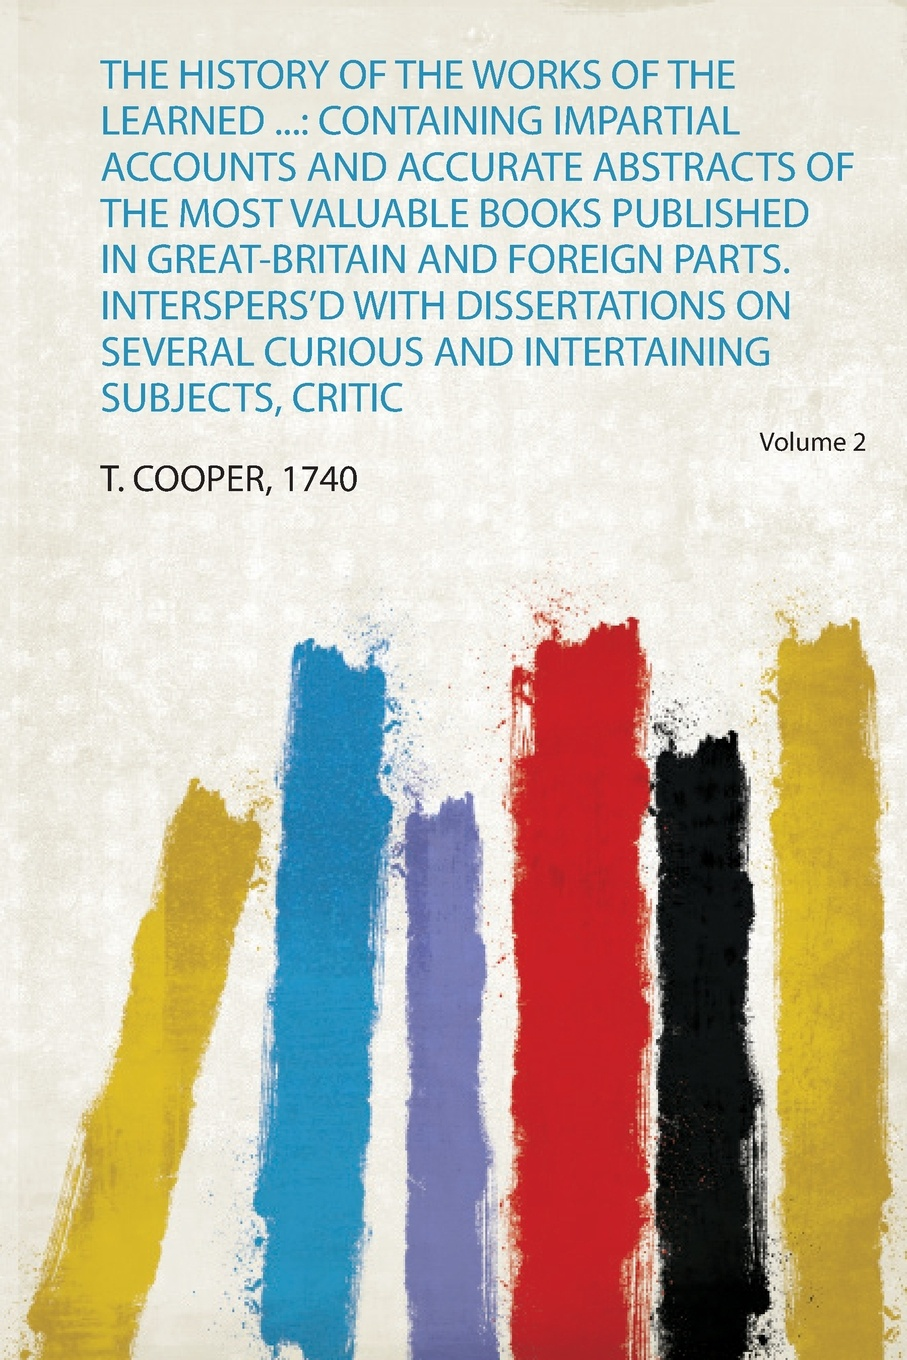 T. Cooper The History of the Works of the Learned ... Containing Impartial Accounts and Accurate Abstracts of the Most Valuable Books Published in Great-Britain and Foreign Parts. Interspers'd With Dissertations on Several Curious and Intertaining Subjects,... hegel the end of history and the future